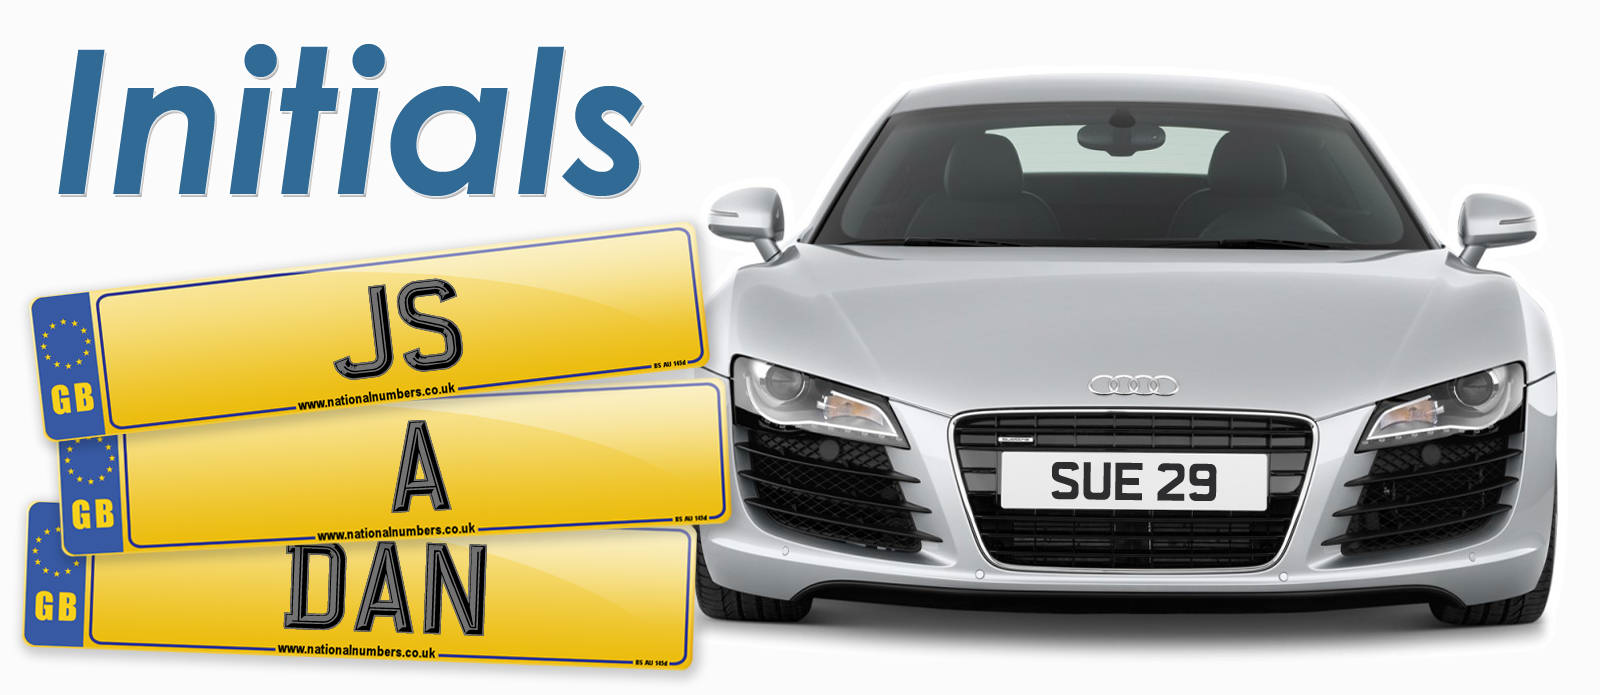 Find number plates to match your initials